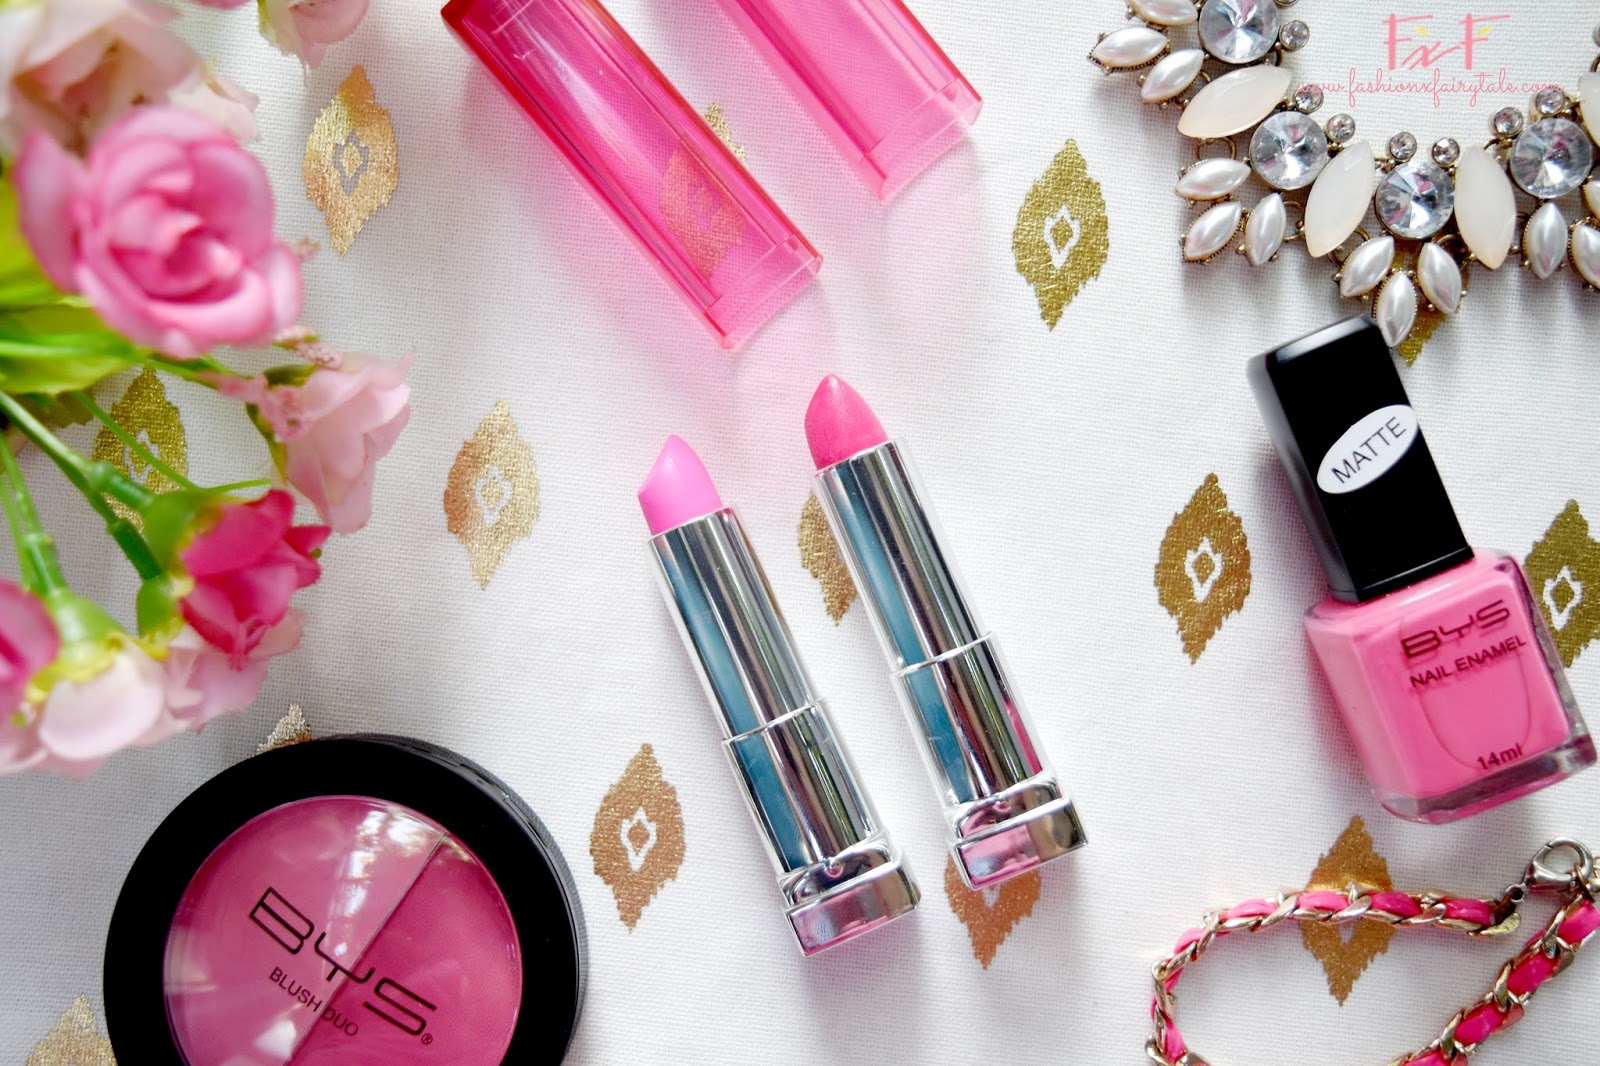 Maybelline Color Sensational Pink Alert Lipstick in POW1 & POW2 | Review & Swatches